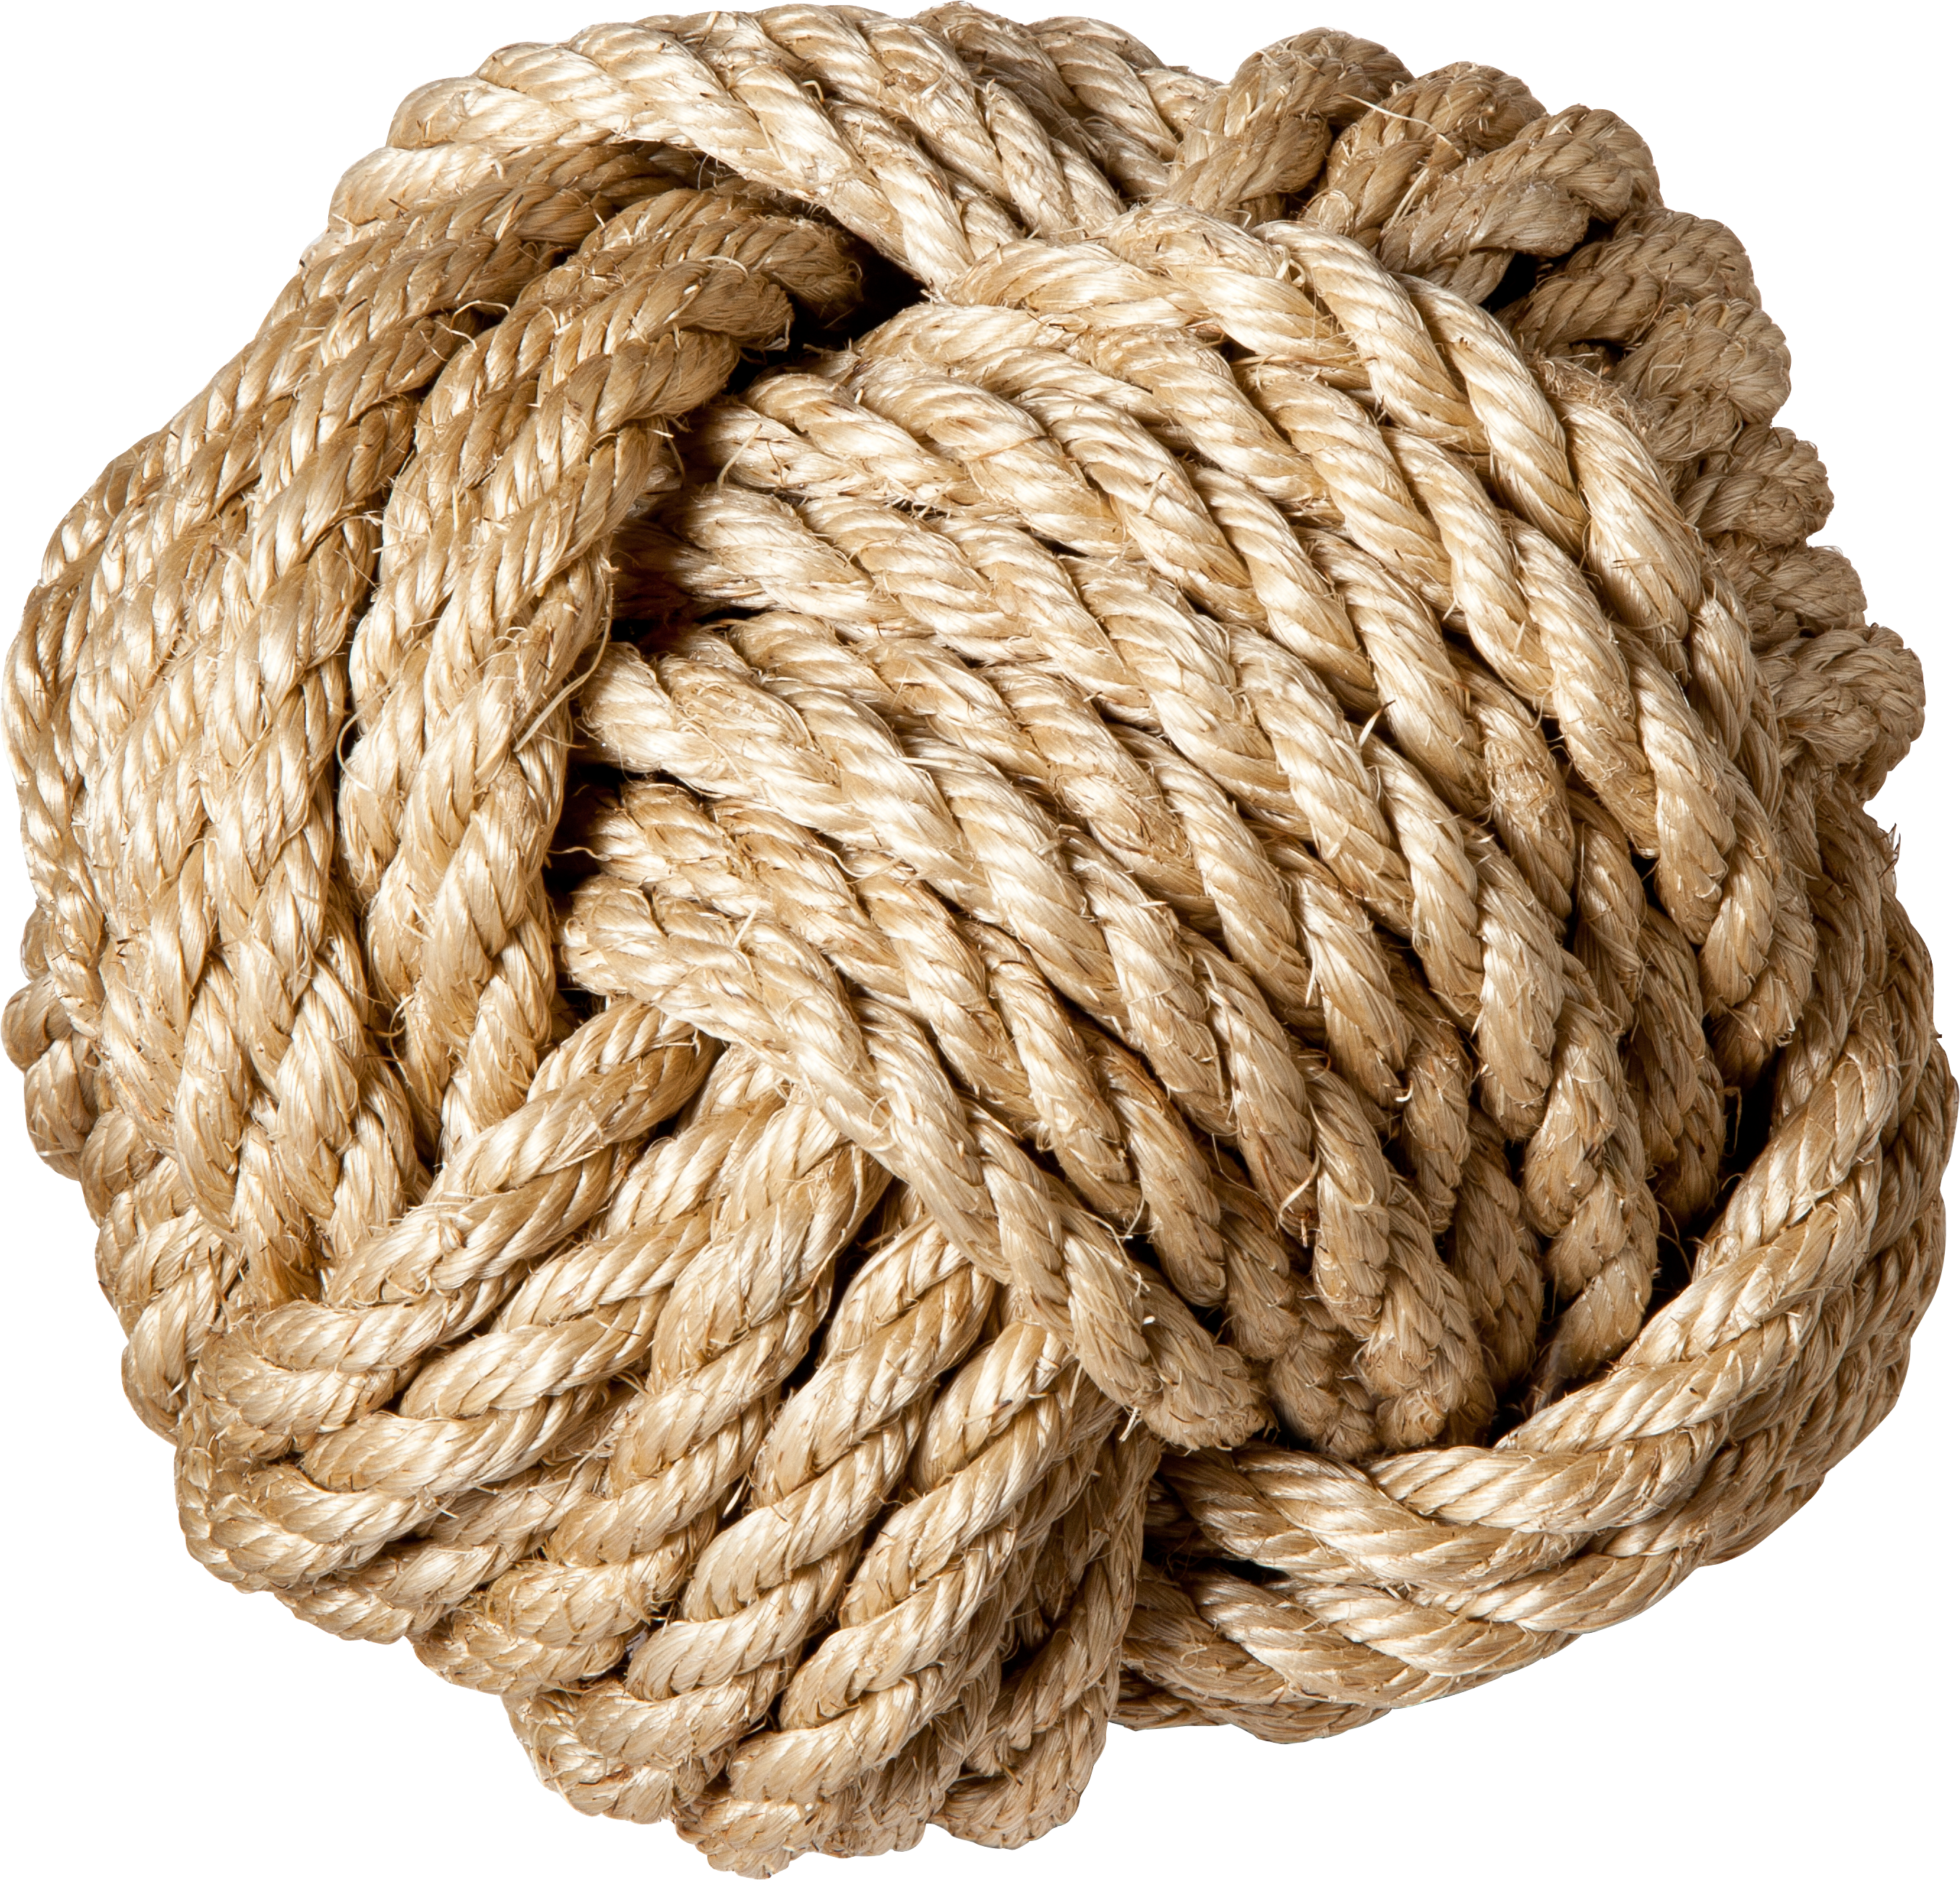 Rope knot png. Images free download